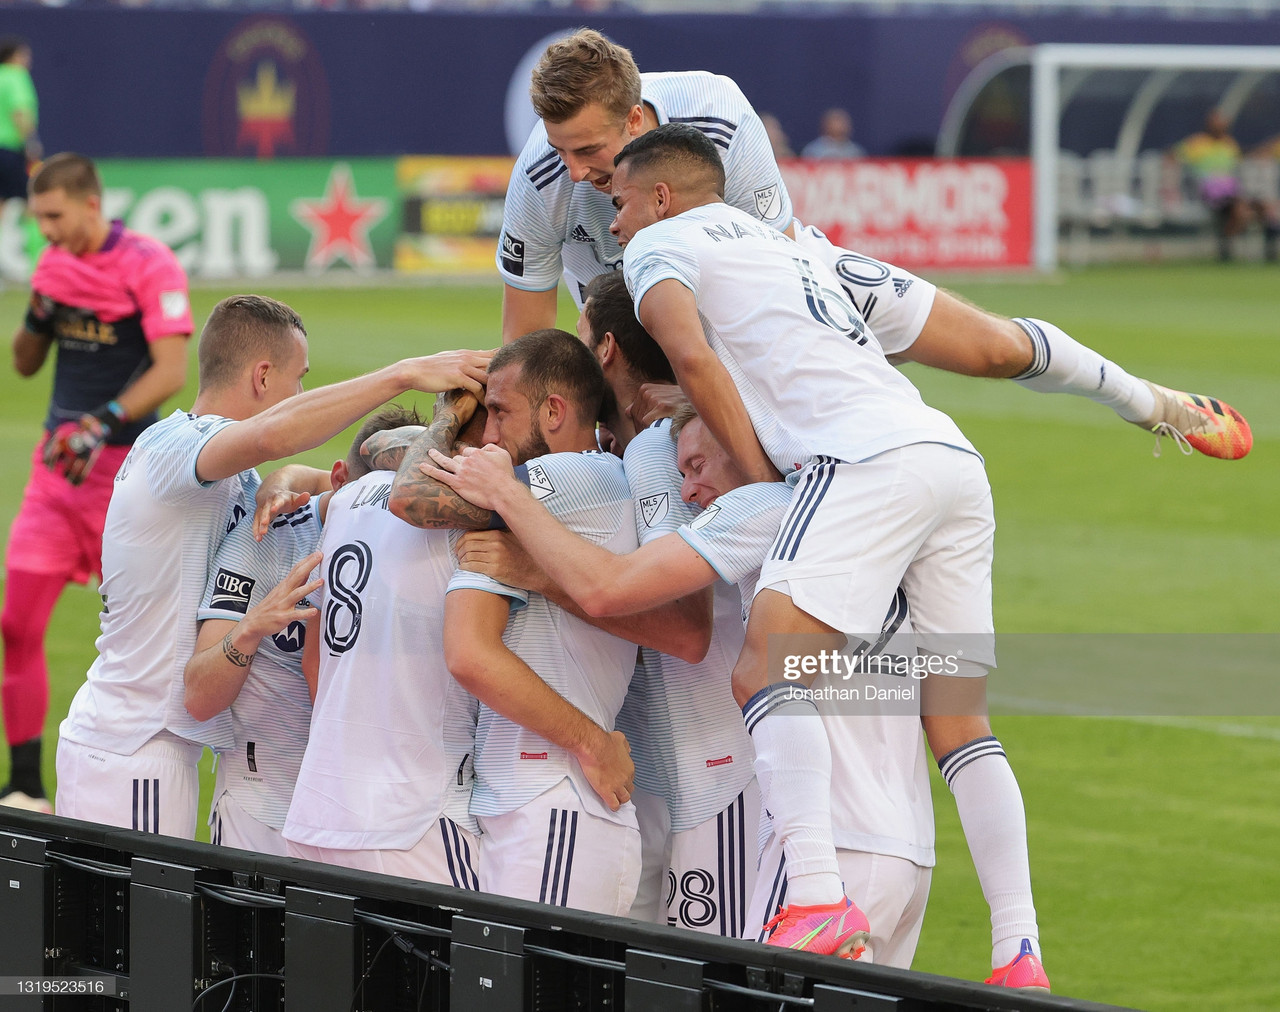 Chicago Fire 1-0 Inter Miami: The Fire end their winless run